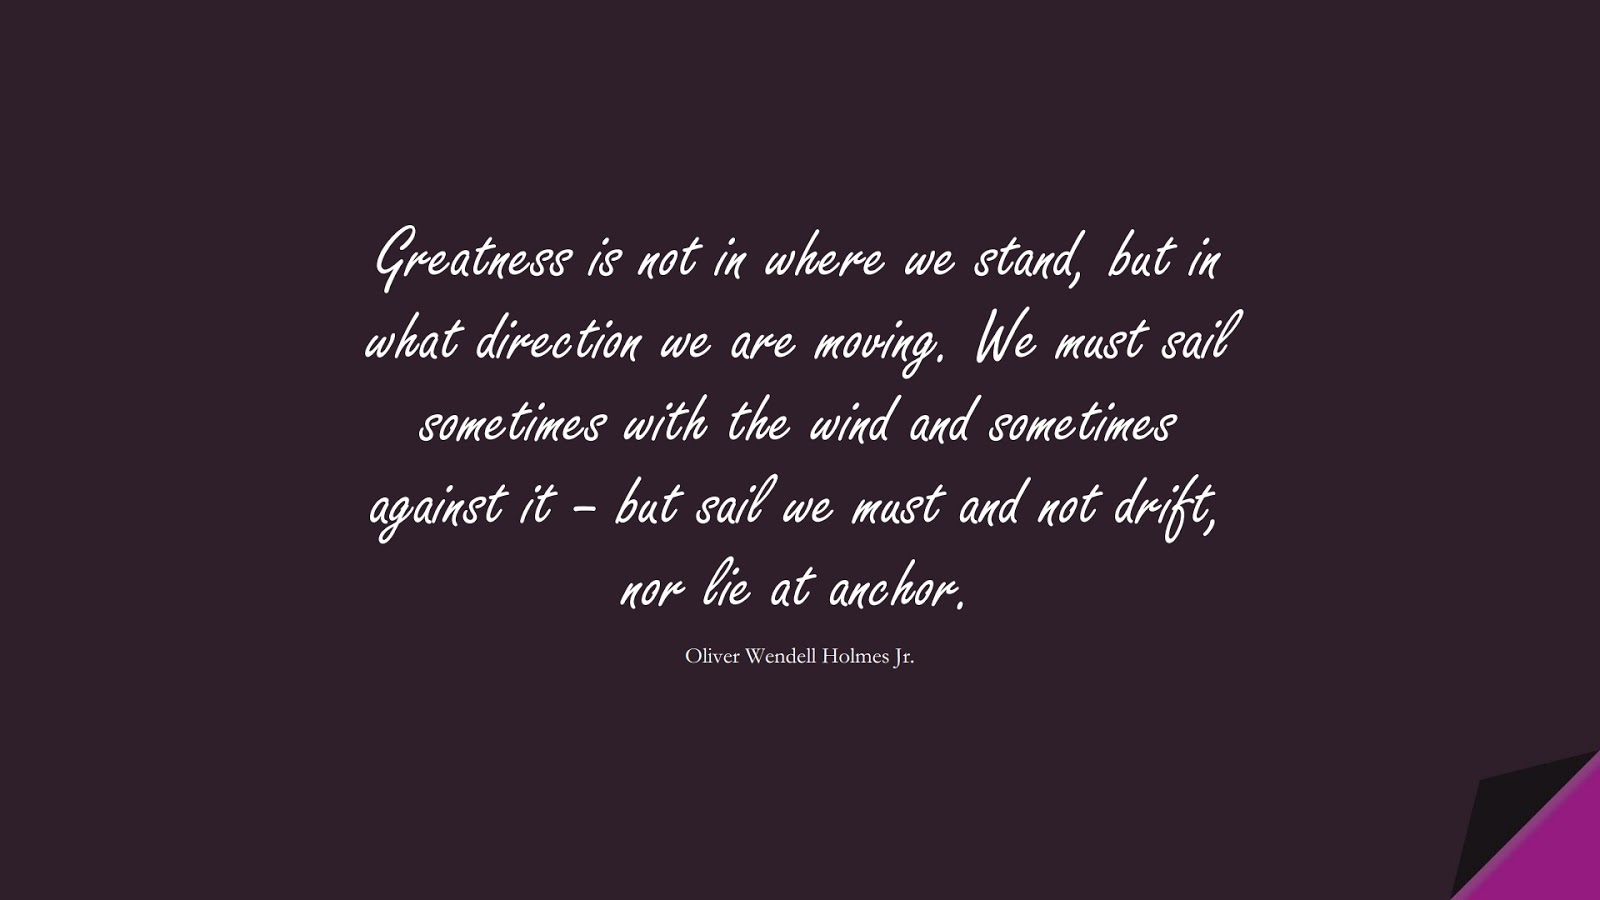 Greatness is not in where we stand, but in what direction we are moving. We must sail sometimes with the wind and sometimes against it – but sail we must and not drift, nor lie at anchor. (Oliver Wendell Holmes Jr.);  #SuccessQuotes